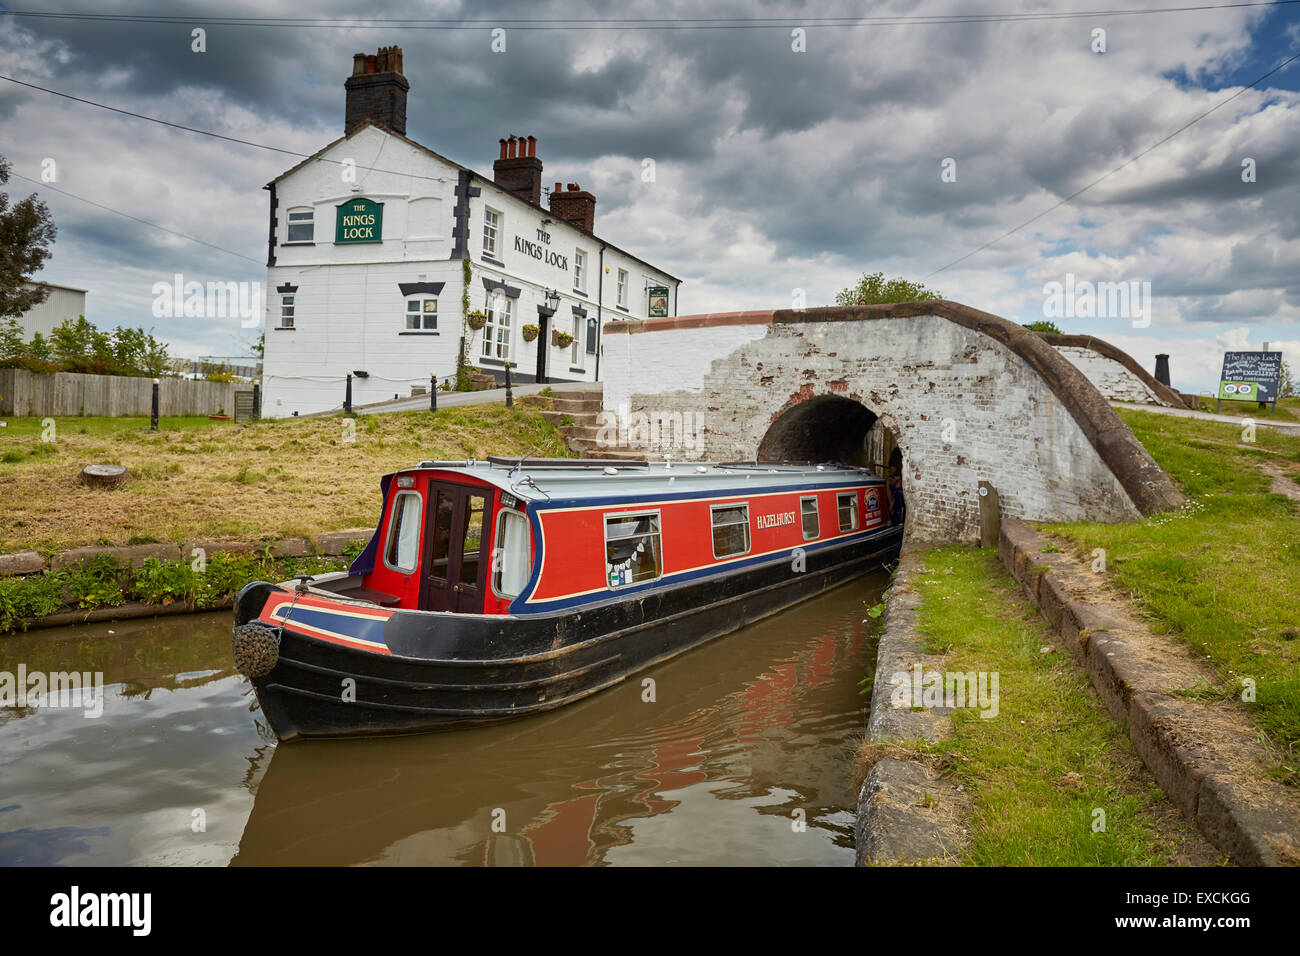 Kings Lock Inn Middlewich canal in Cheshire - Stock Image